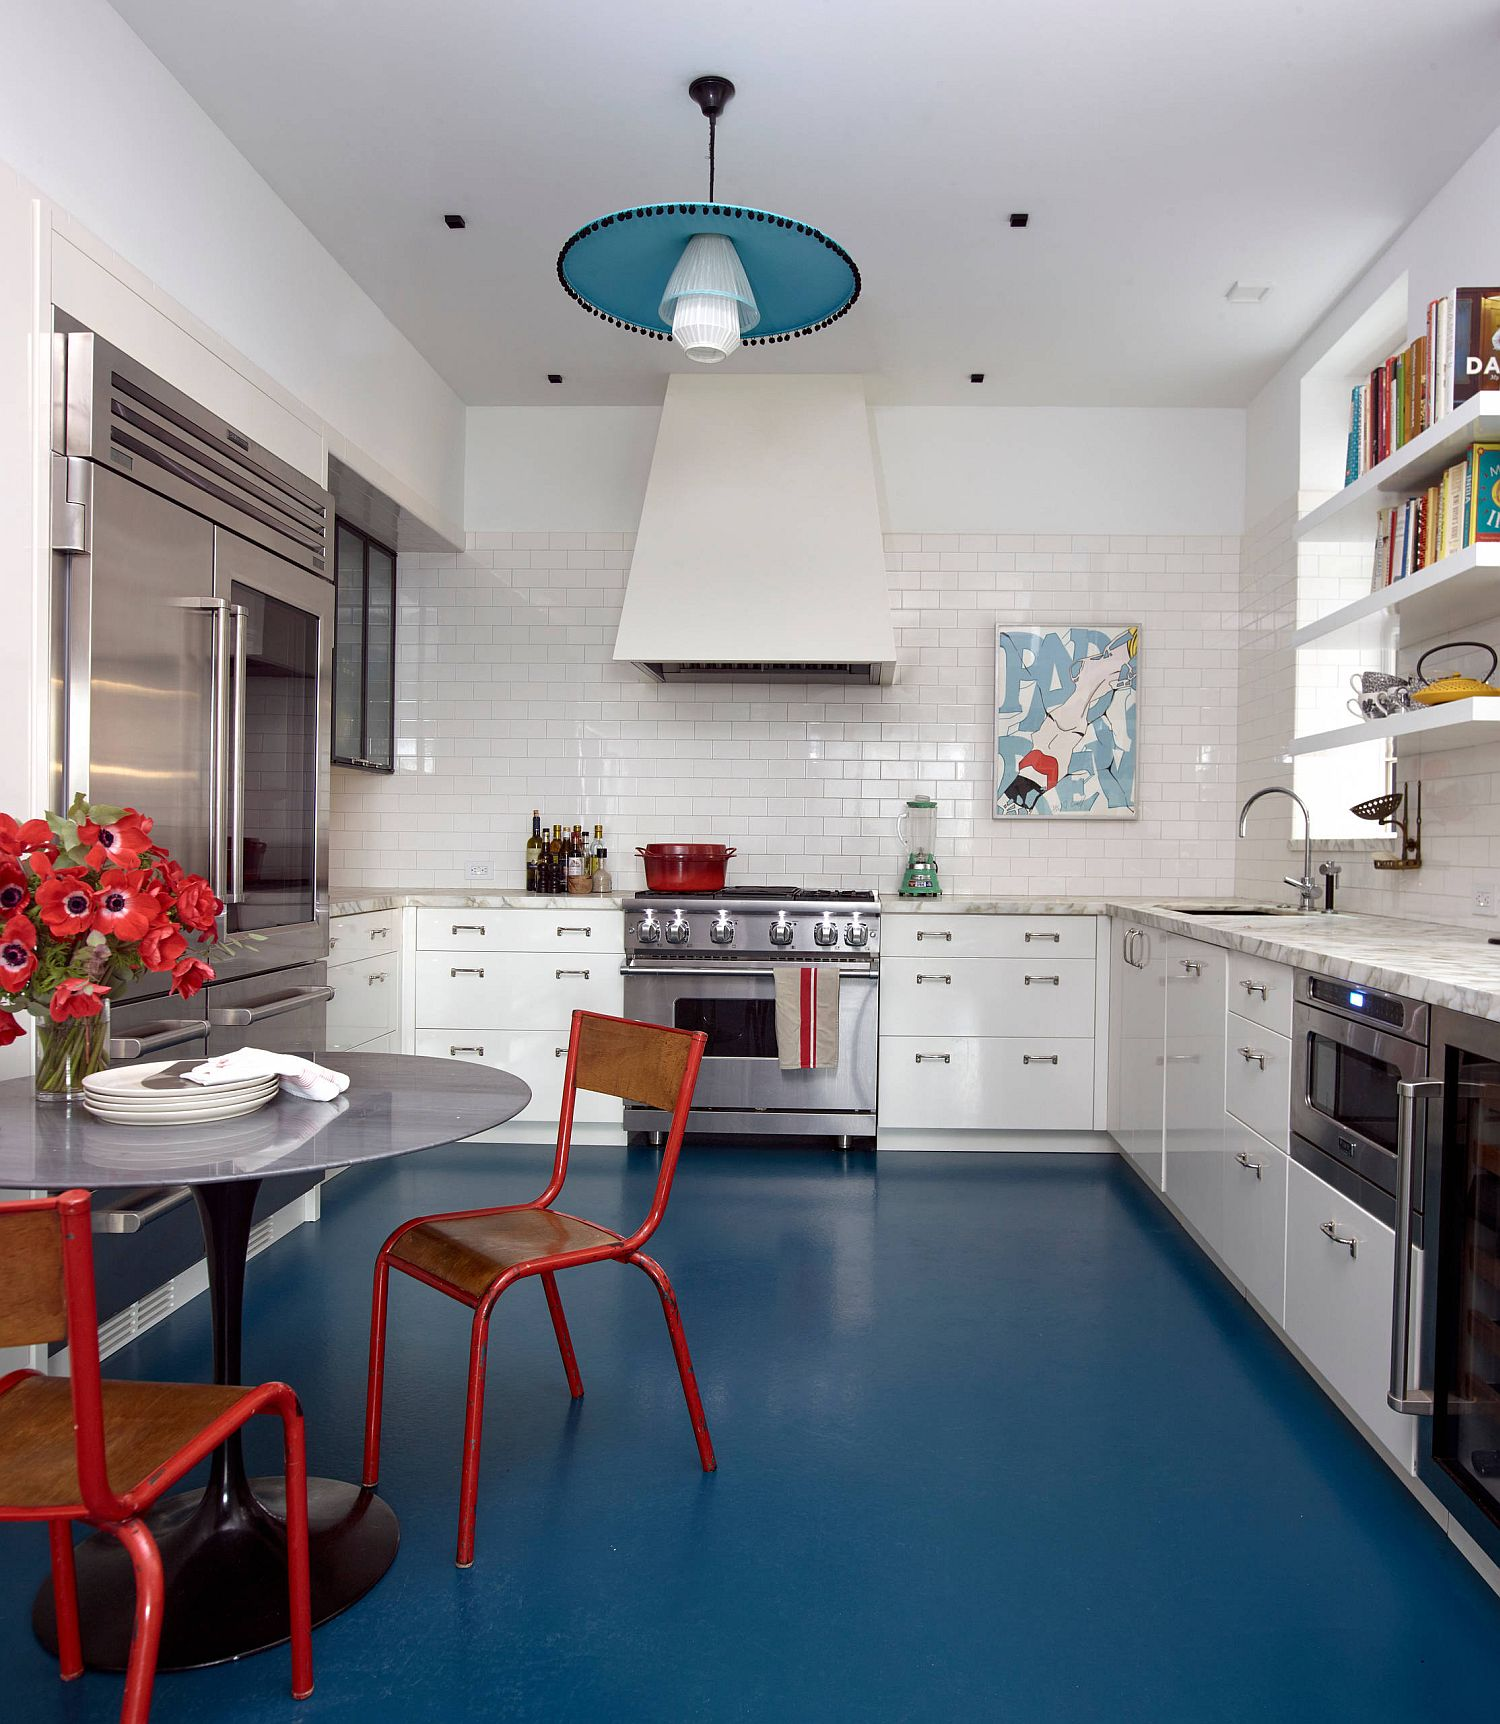 It-is-not-very-often-that-you-see-a-kitchen-where-floor-adds-color-to-the-setting